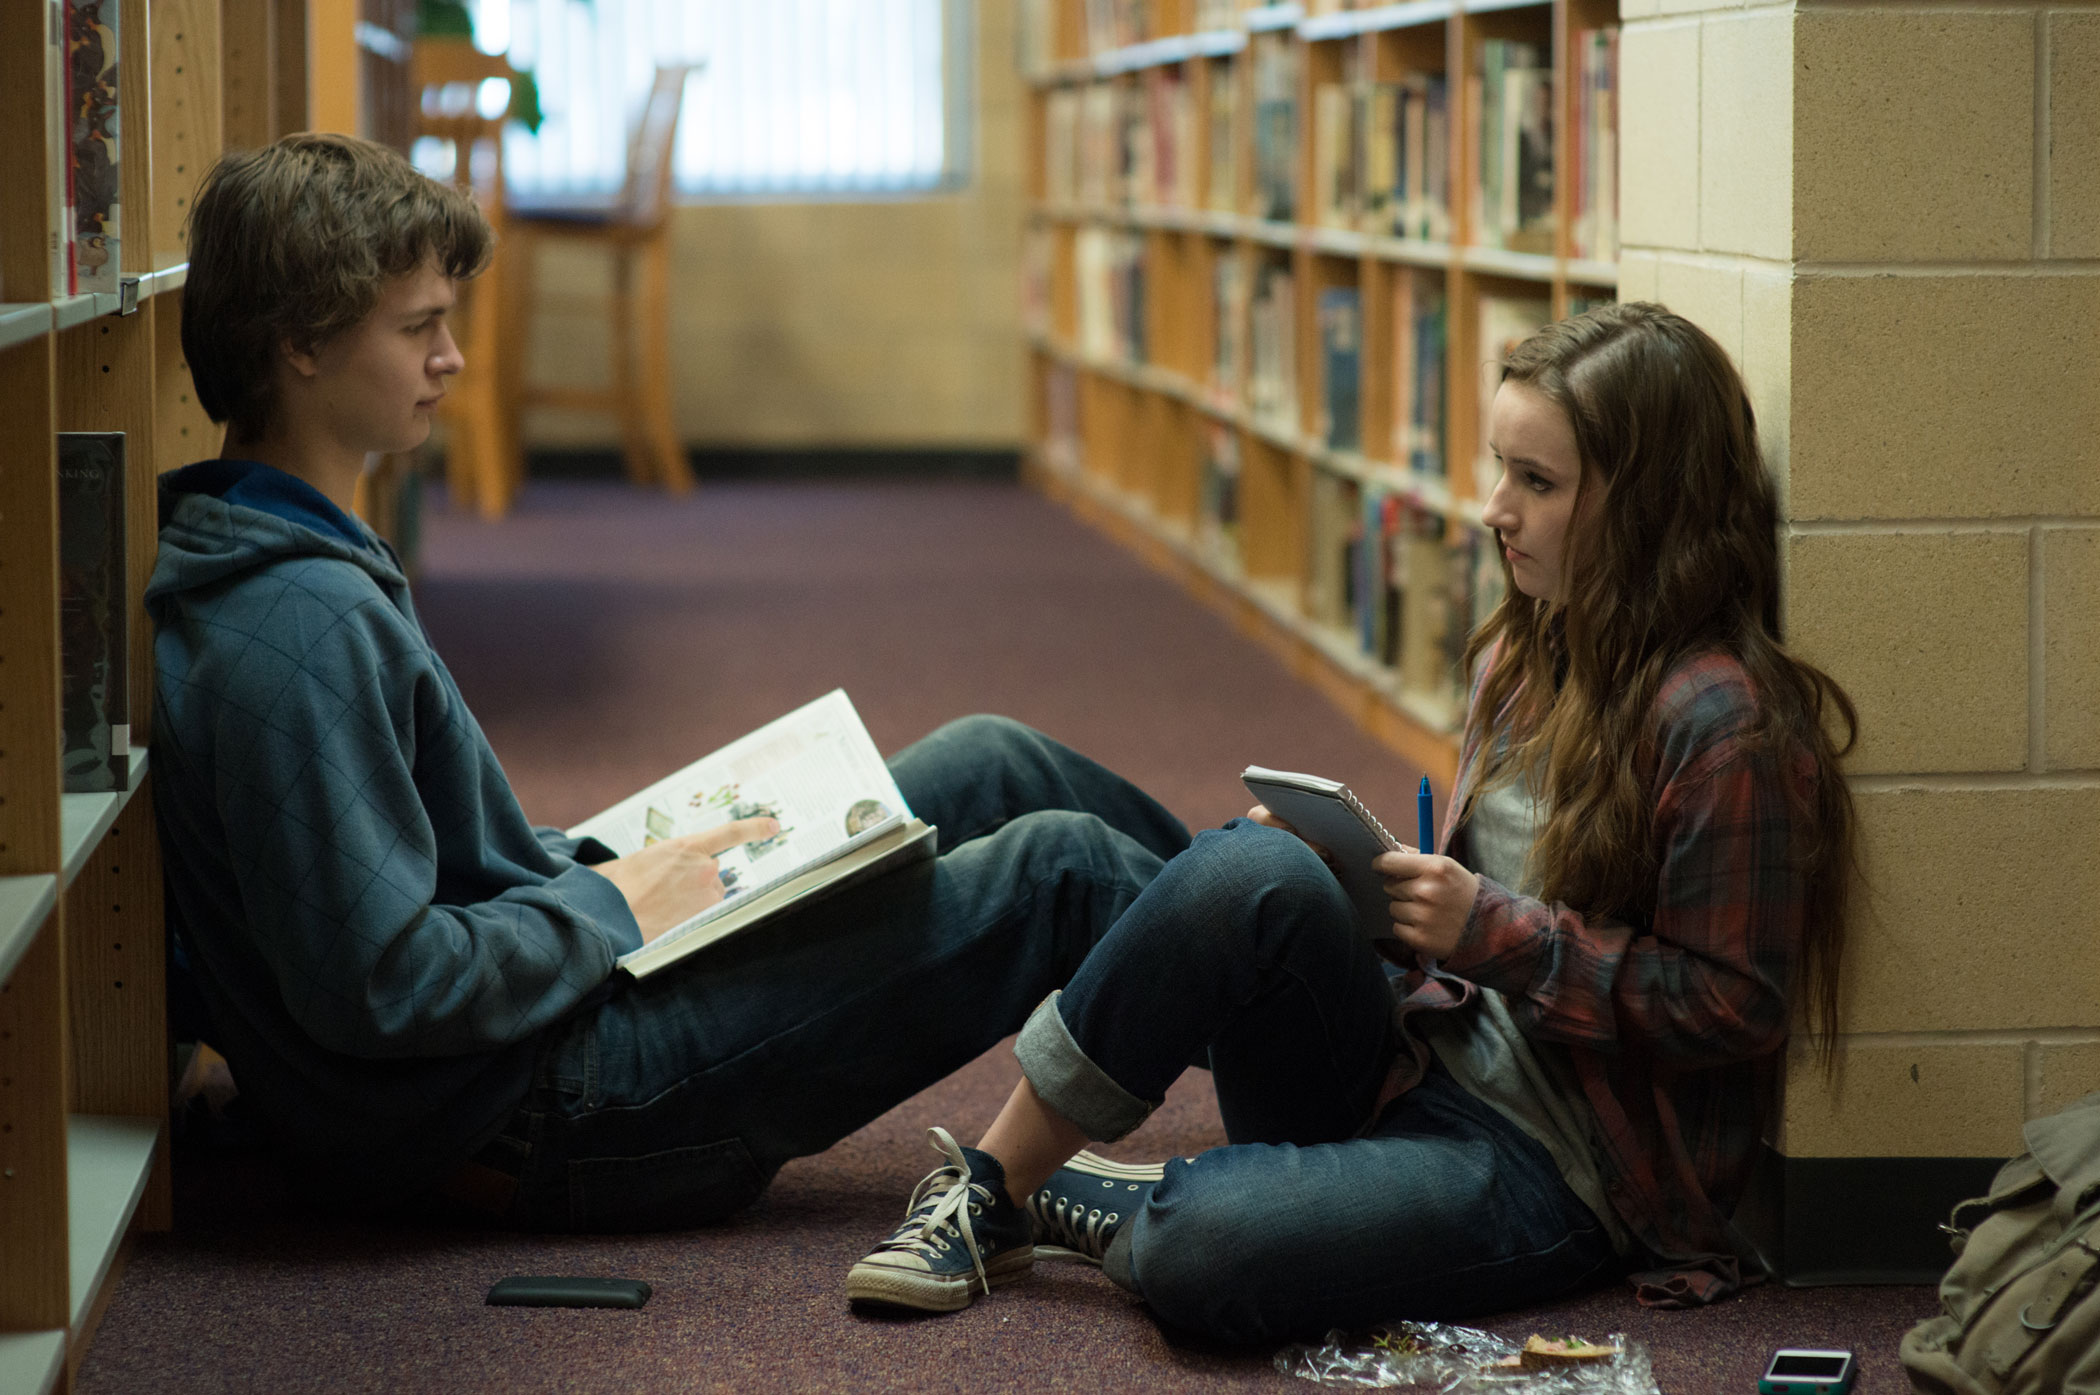 Ansel Elgort plays Tim Mooney and Kaitlyn Dever plays Brandy Beltmeyer in Men, Women & Children